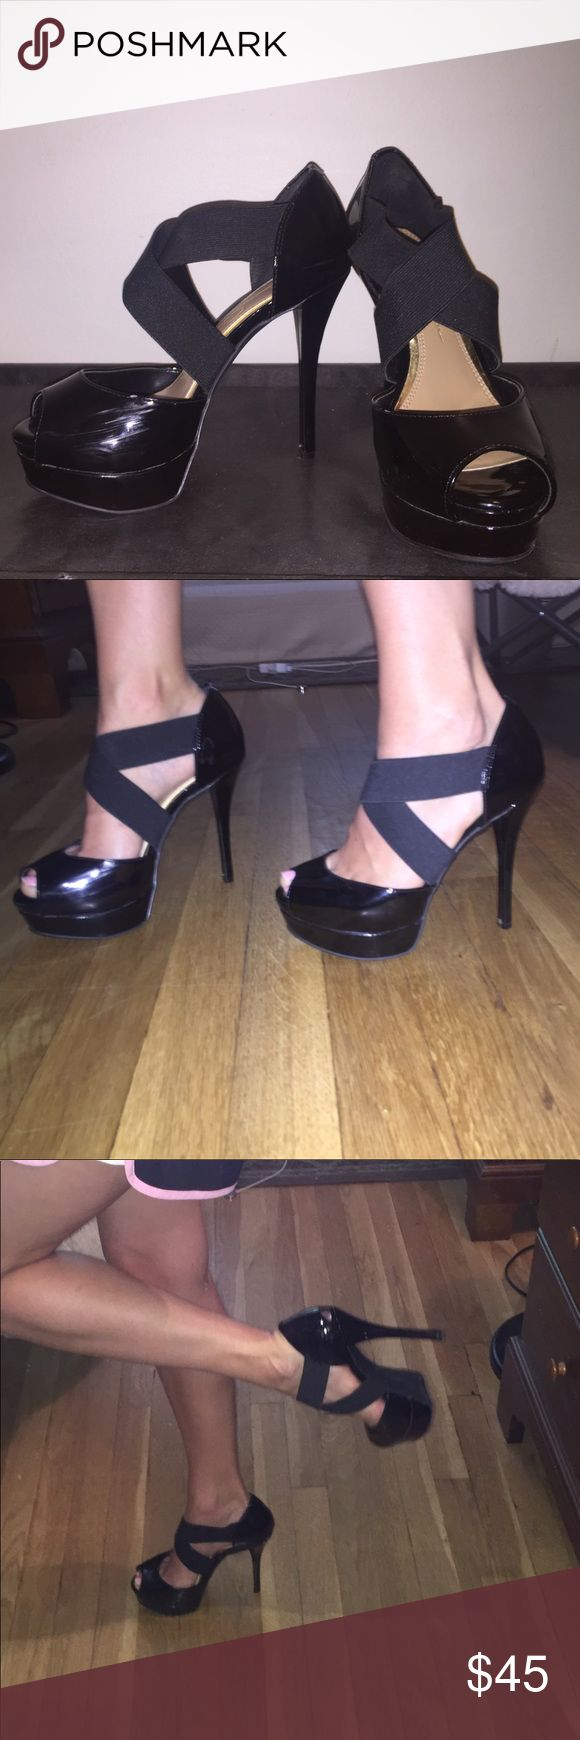 Jessica Simpson black strappy heels Wore these beauties ONCE for prom-- they are in mint condition. The elastic straps are perfect for both wide and narrow feet! I don't do well walking in heels but these are super comfy and easy to get around in! They are about 6 inches tall. Jessica Simpson Shoes Heels